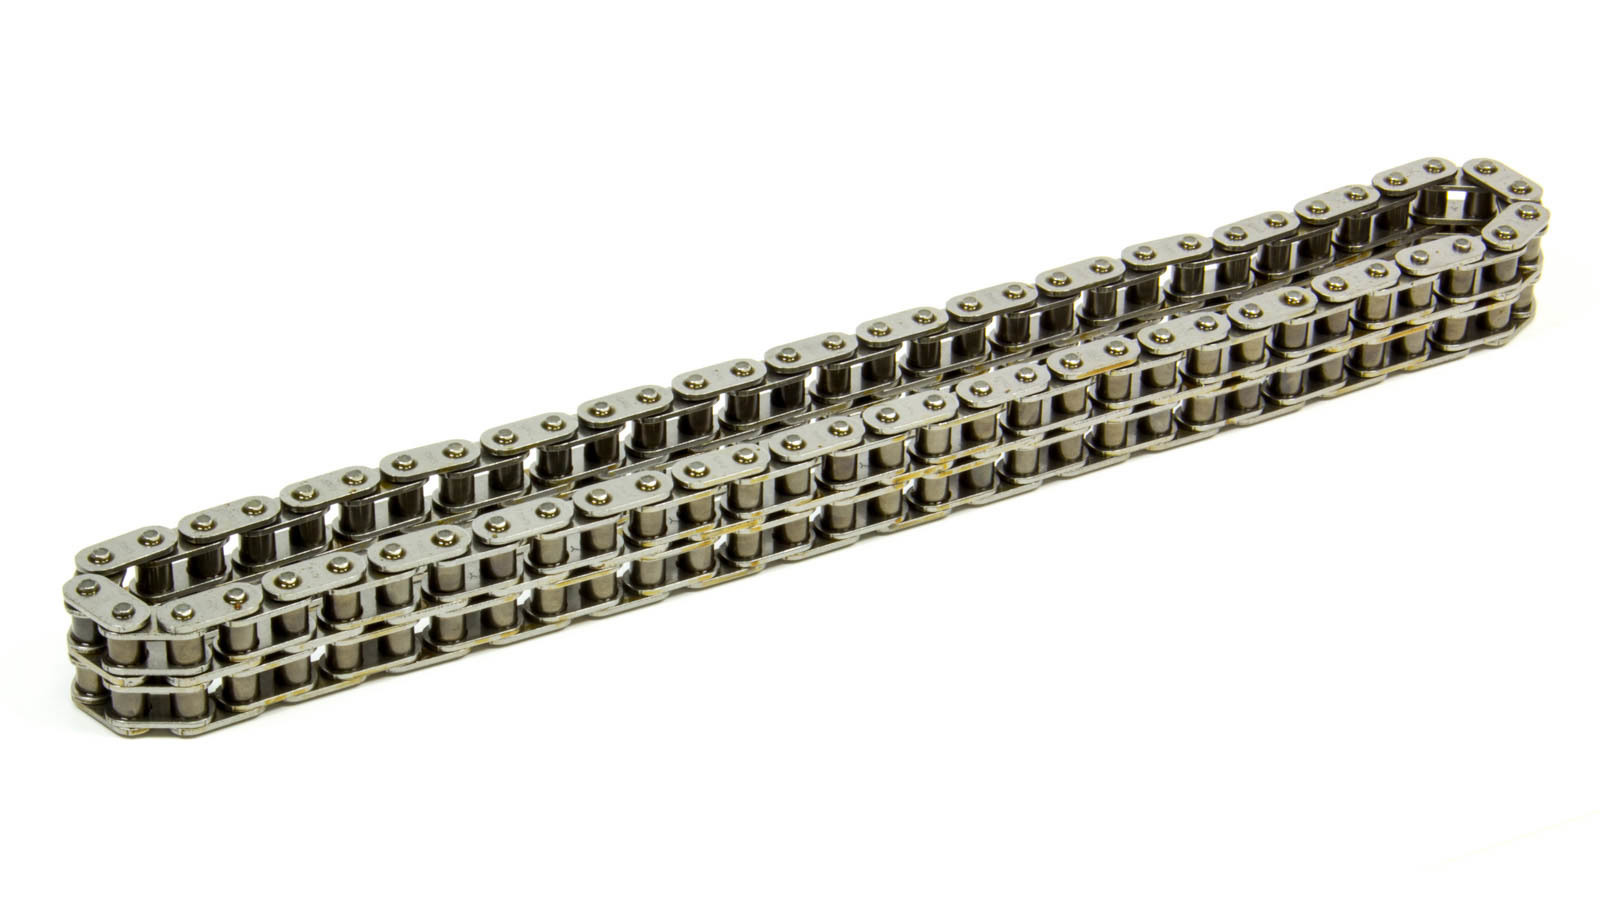 ROLLMASTER-ROMAC 3DR64-2 Replacement Timing Chain 64-Link ...